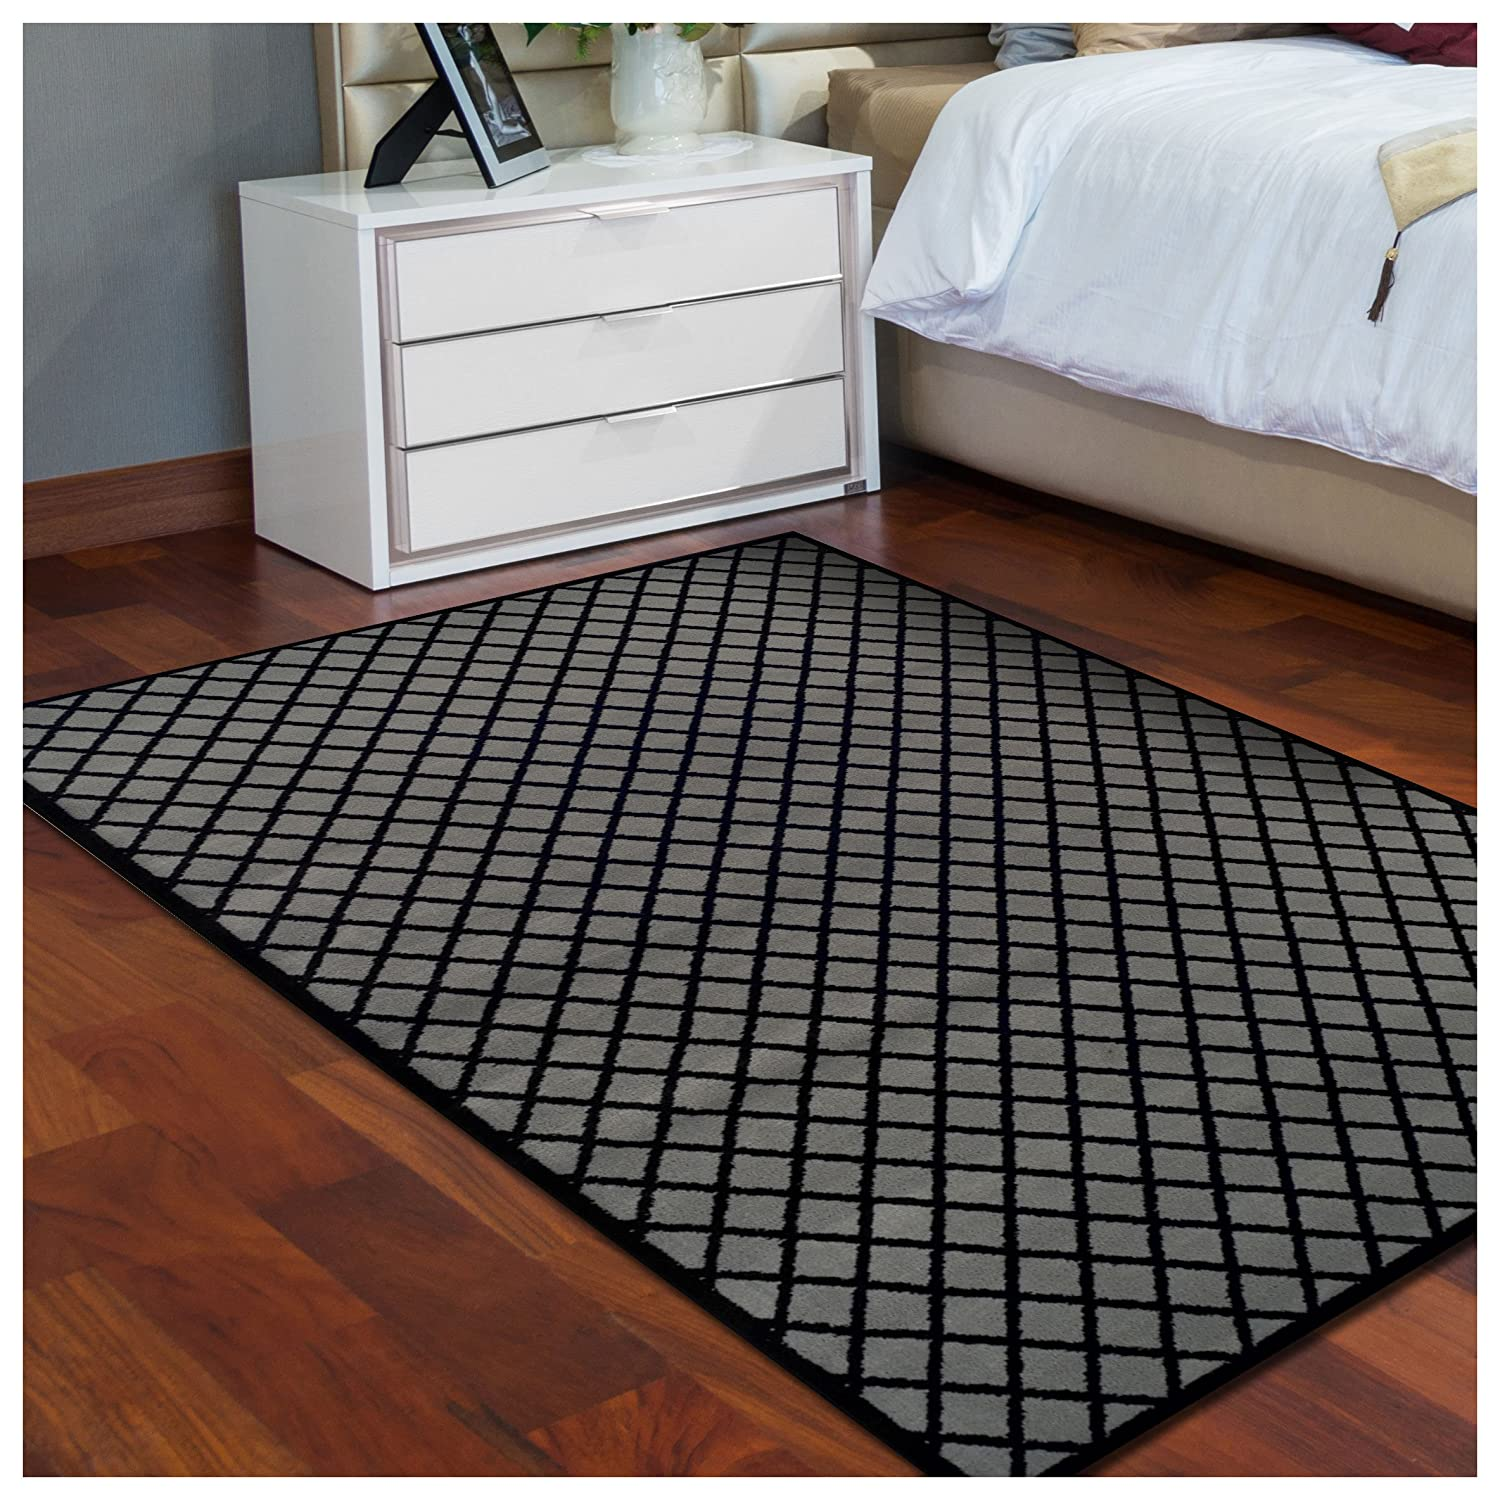 Superior Davenport Collection Area Rug, 8mm Pile Height with Jute Backing, Classic Diamond Grid Pattern, Fashionable and Affordable Woven Rugs - 2'7 x 8' Runner, Black & Grey 2.6x8RUG-DAVENPORT